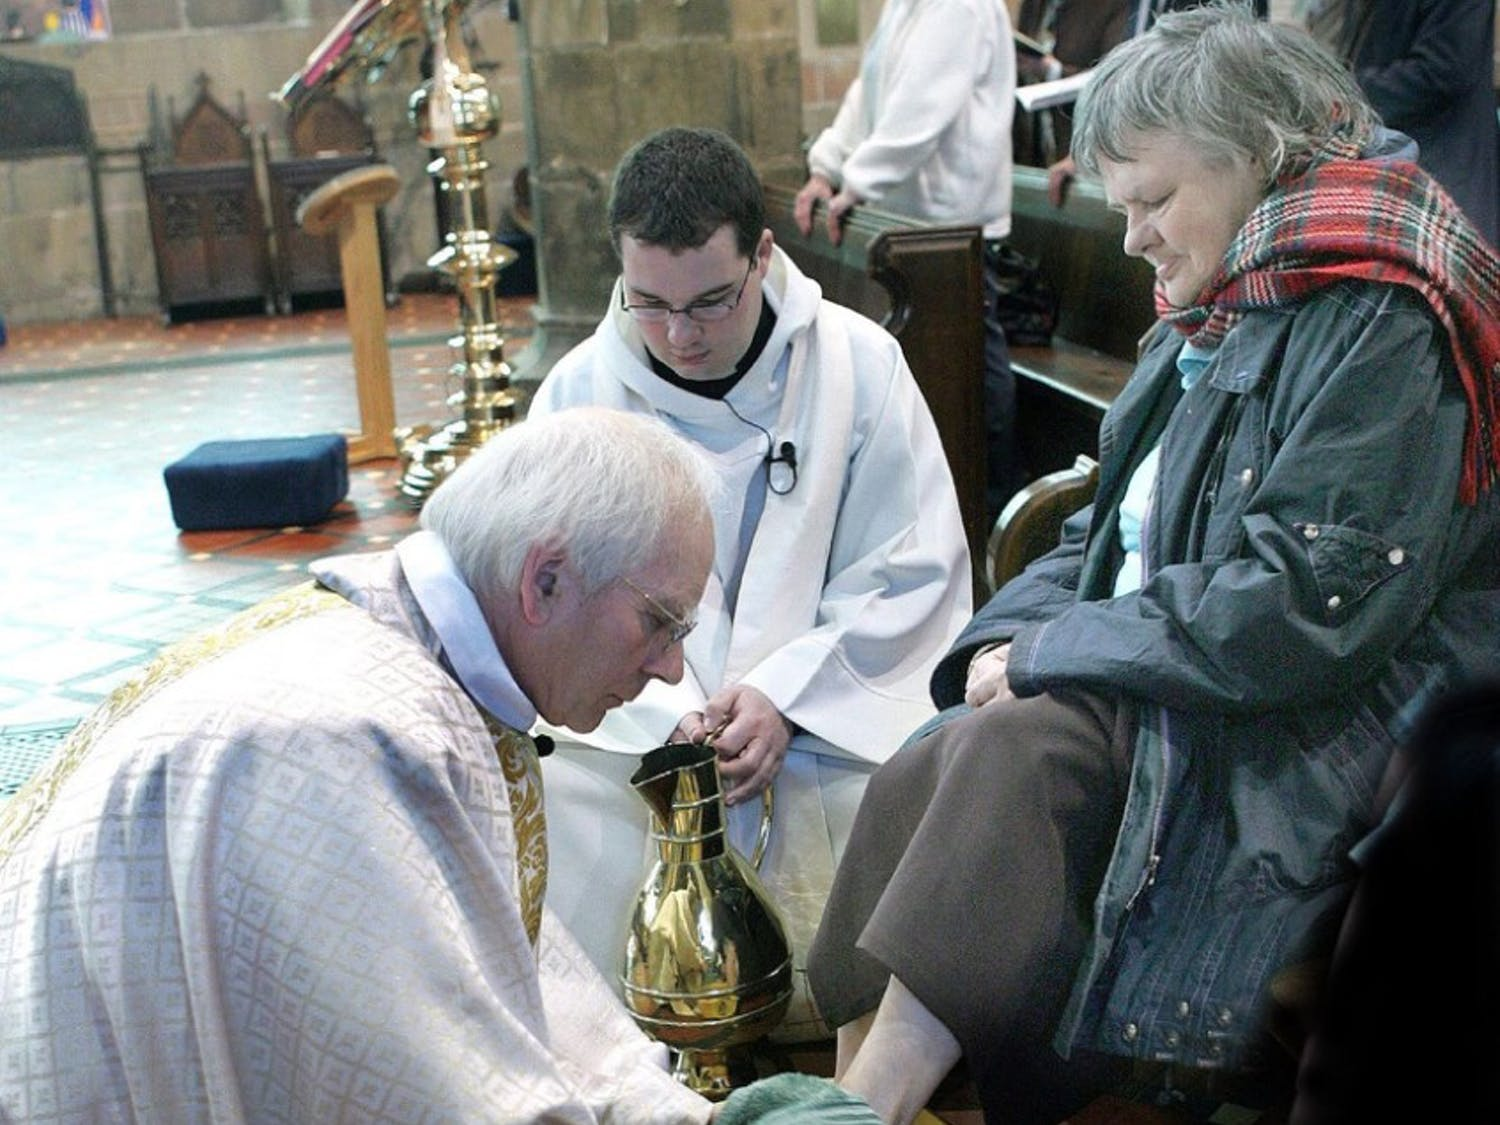 Mrs. Kilgore wasn't pleased with the Pope's foot cleaning efforts.